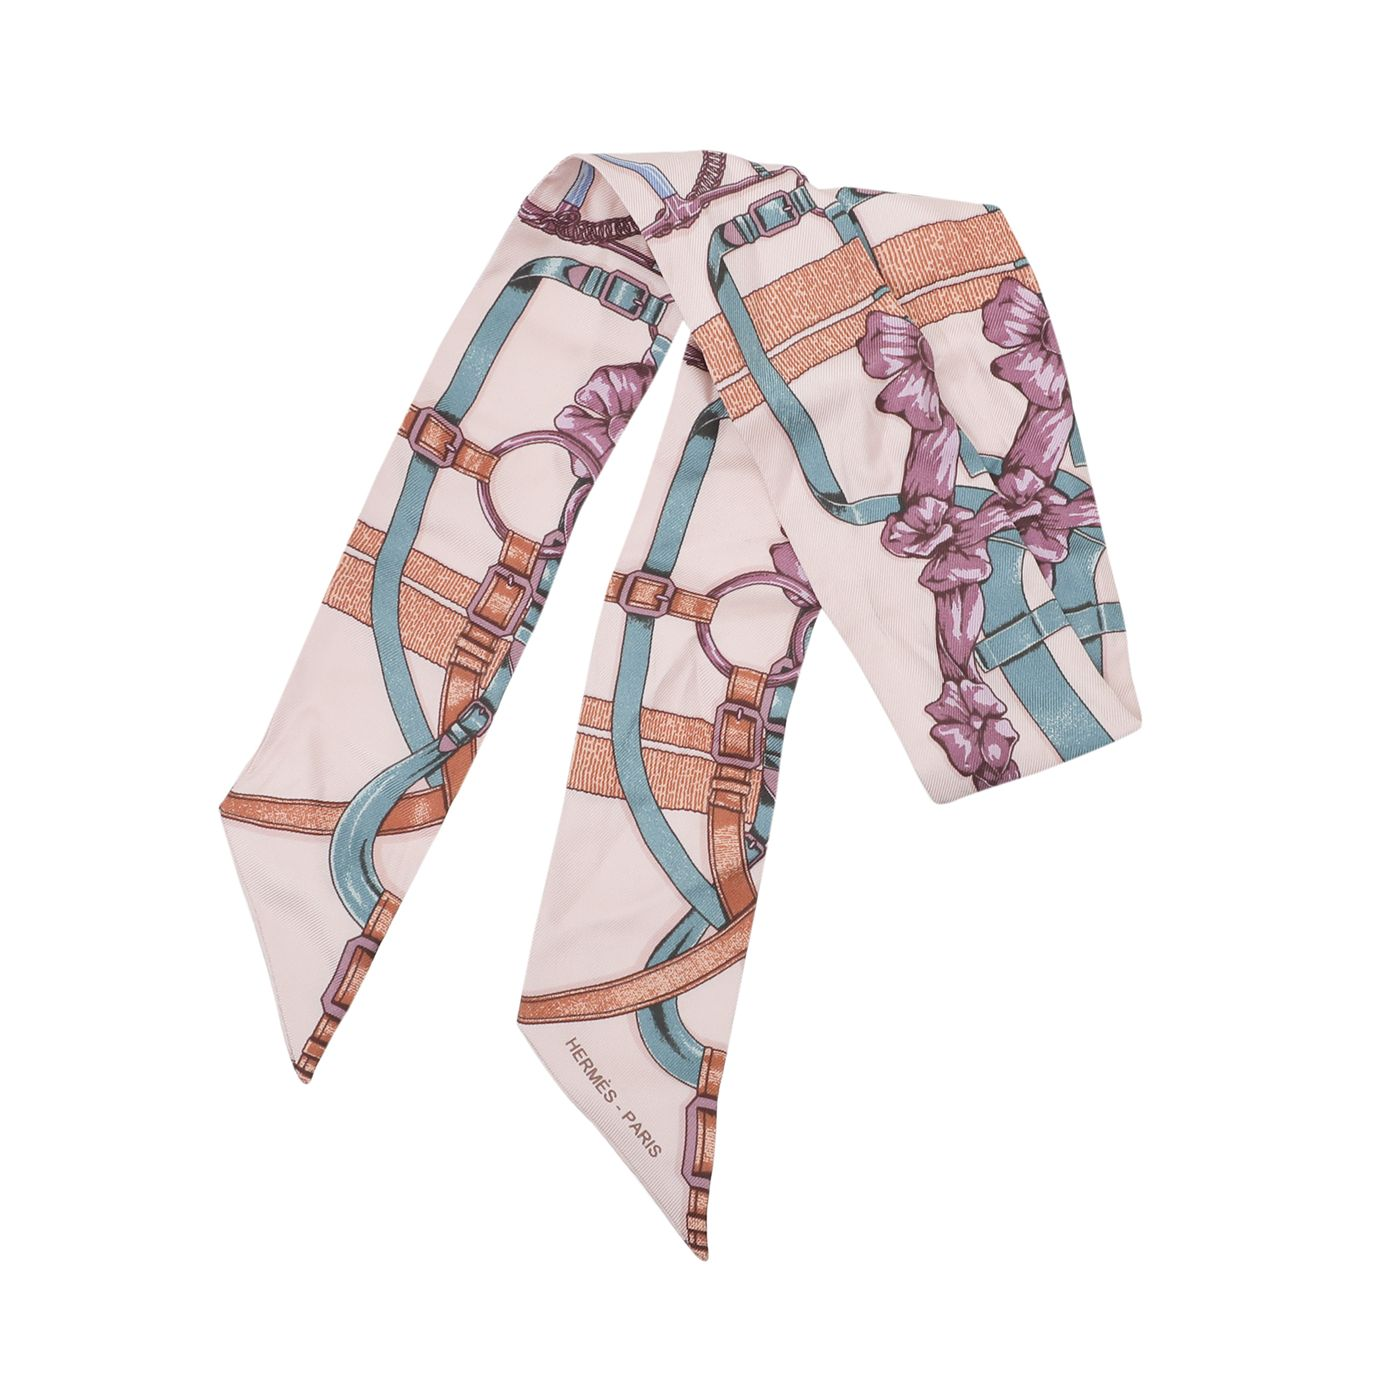 Hermes Light Peach Multicolor Braided Floral & Buckle Print Twilly Scarf